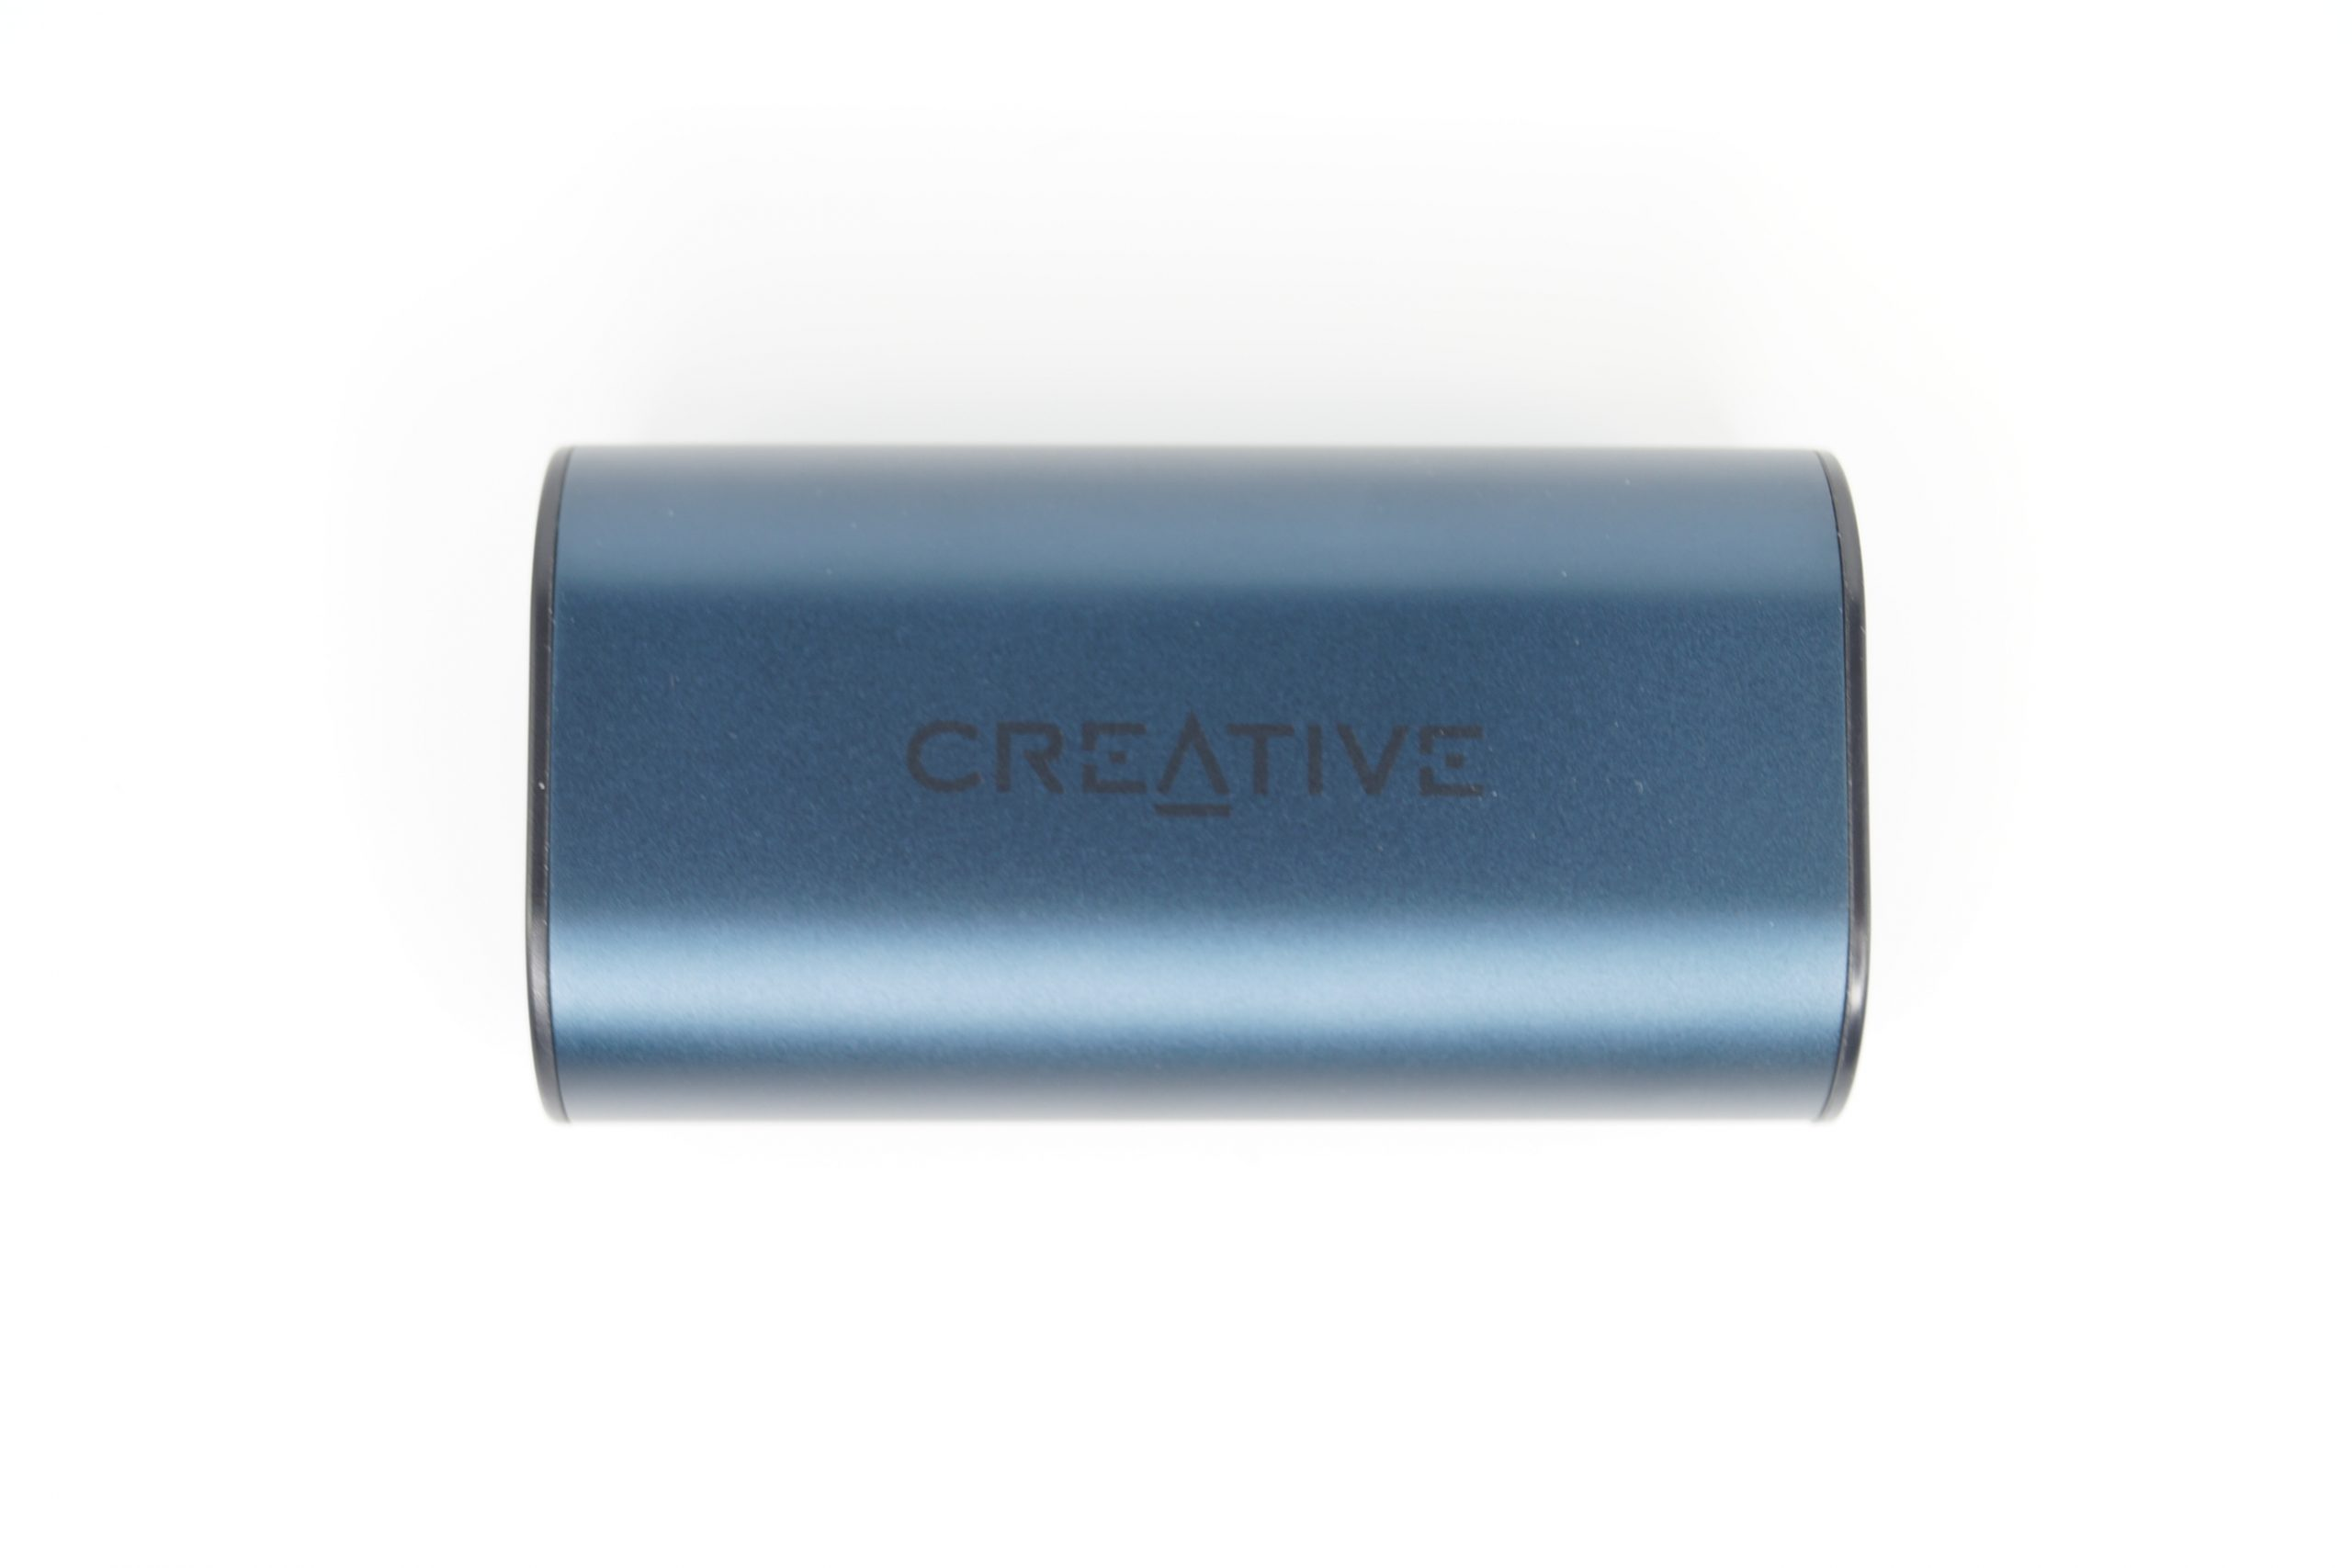 Creative Outlier Air V2 Ladecase